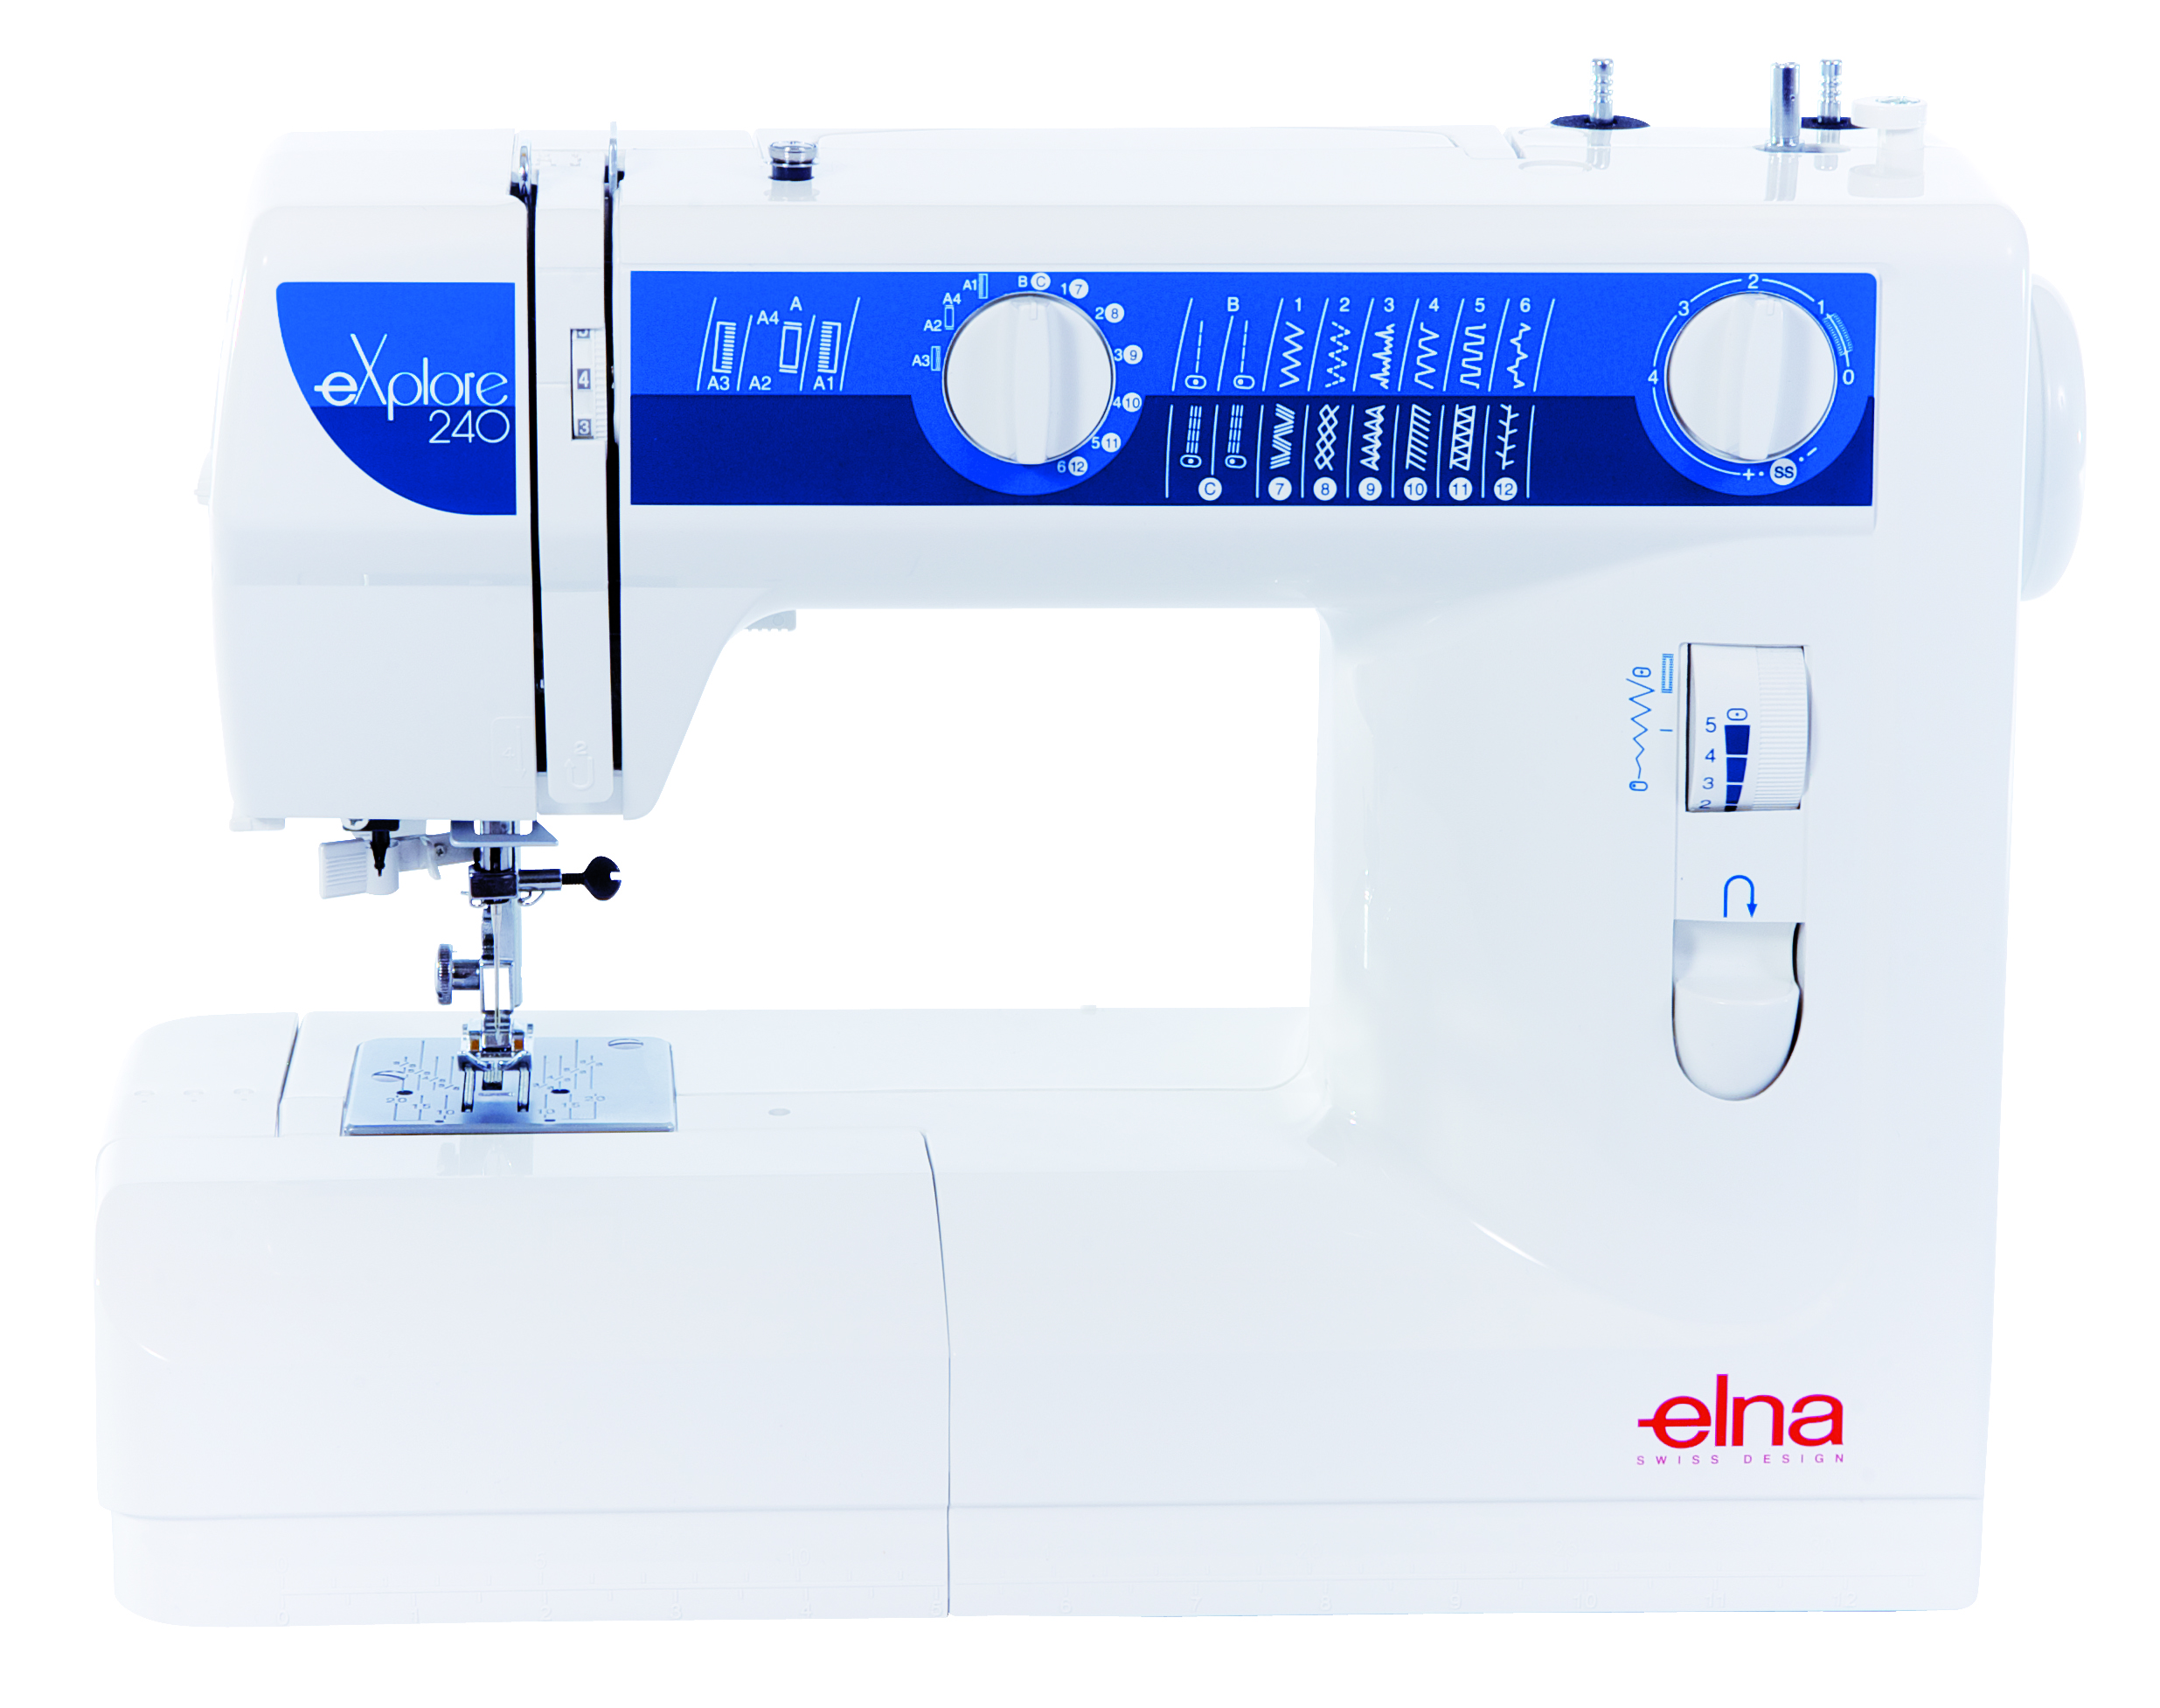 Elna Eplore 240  * 24 built-in stitches  * built-in storage  * Snap-on presser feet  * needle threader  * reverse lever  * circular sewing